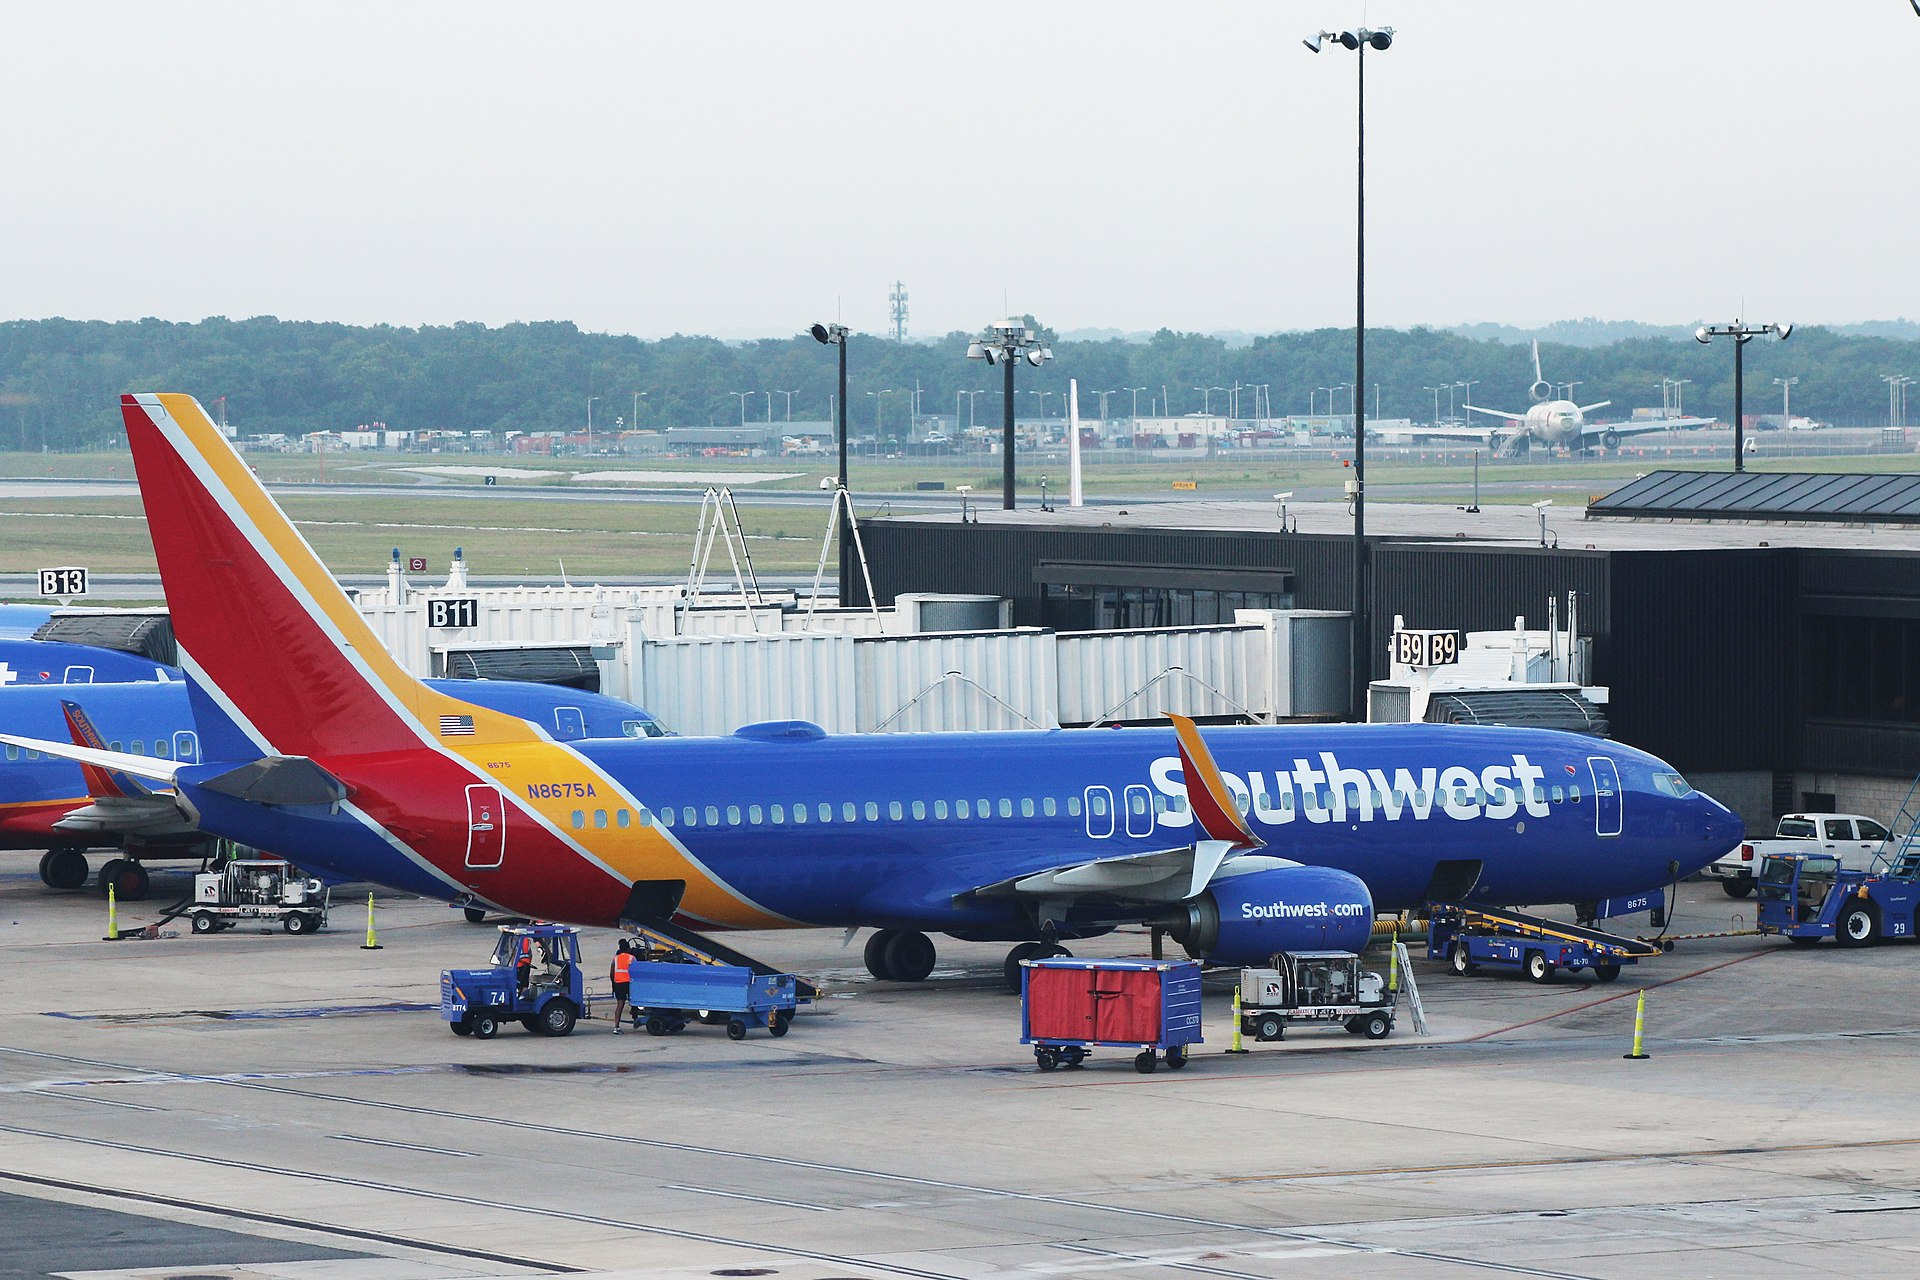 Southwest Airlines Wikipedia